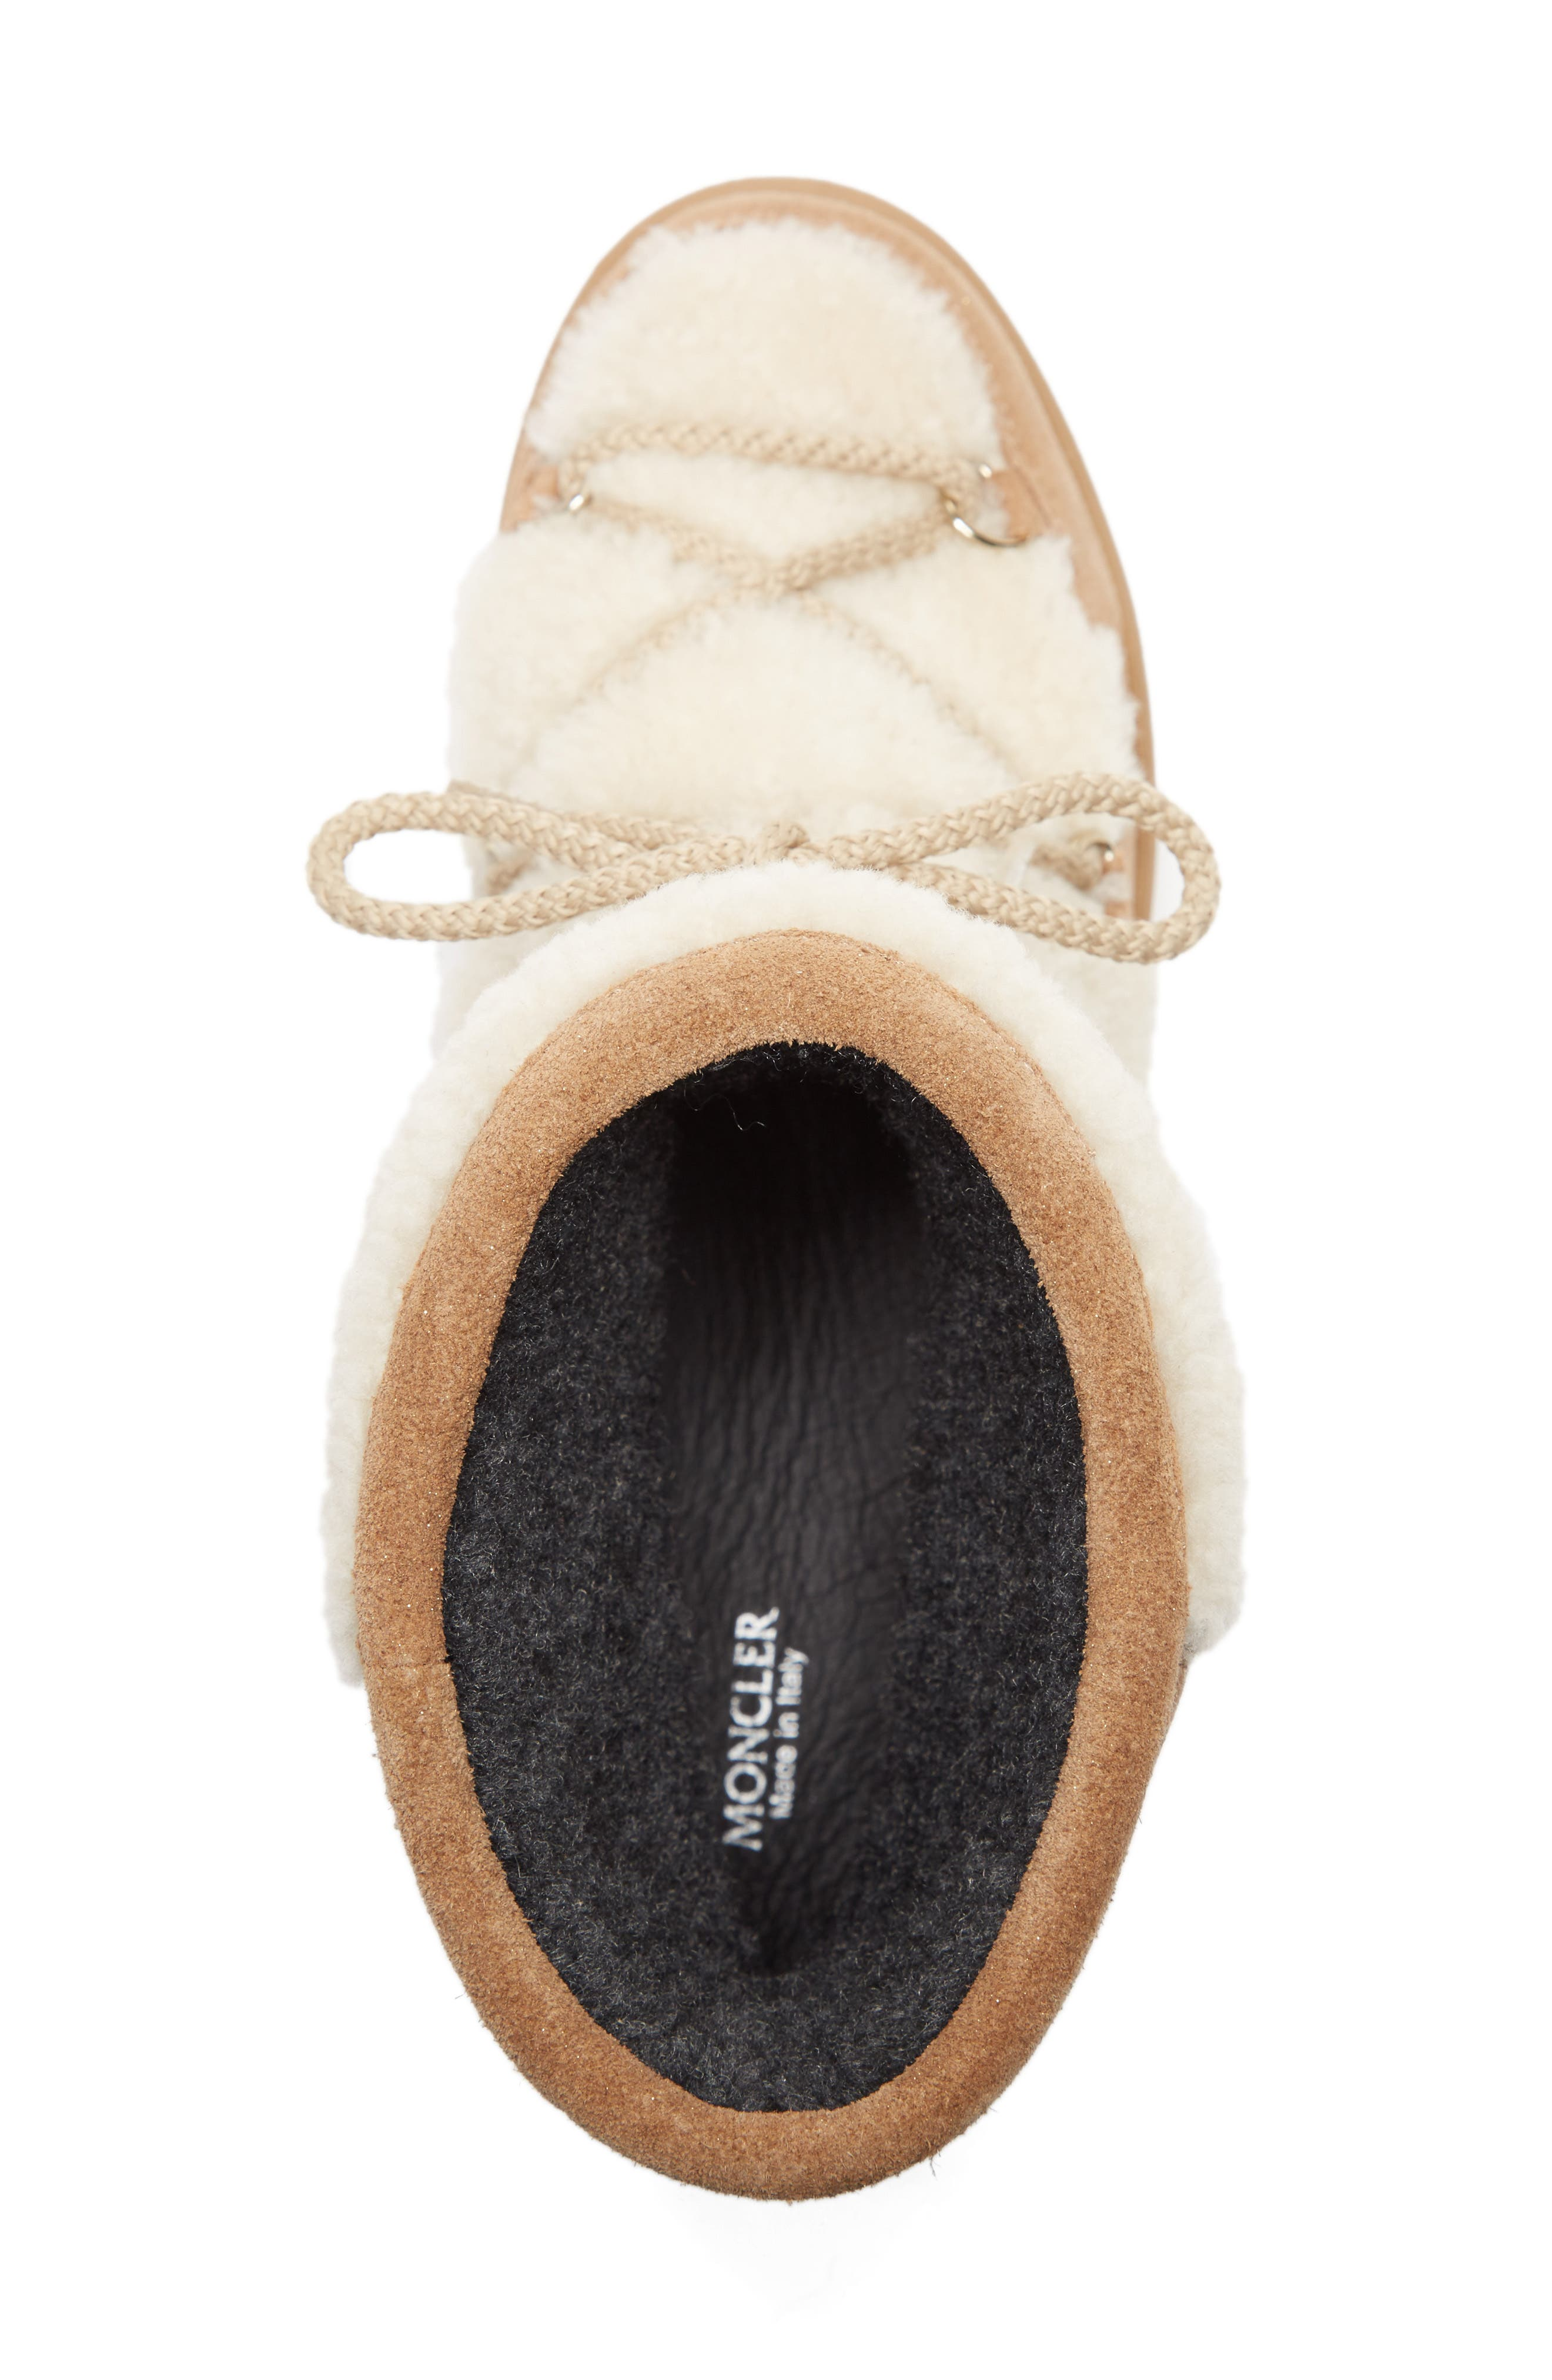 New Fanny Stivale Genuine Shearling Short Moon Boots,                             Alternate thumbnail 5, color,